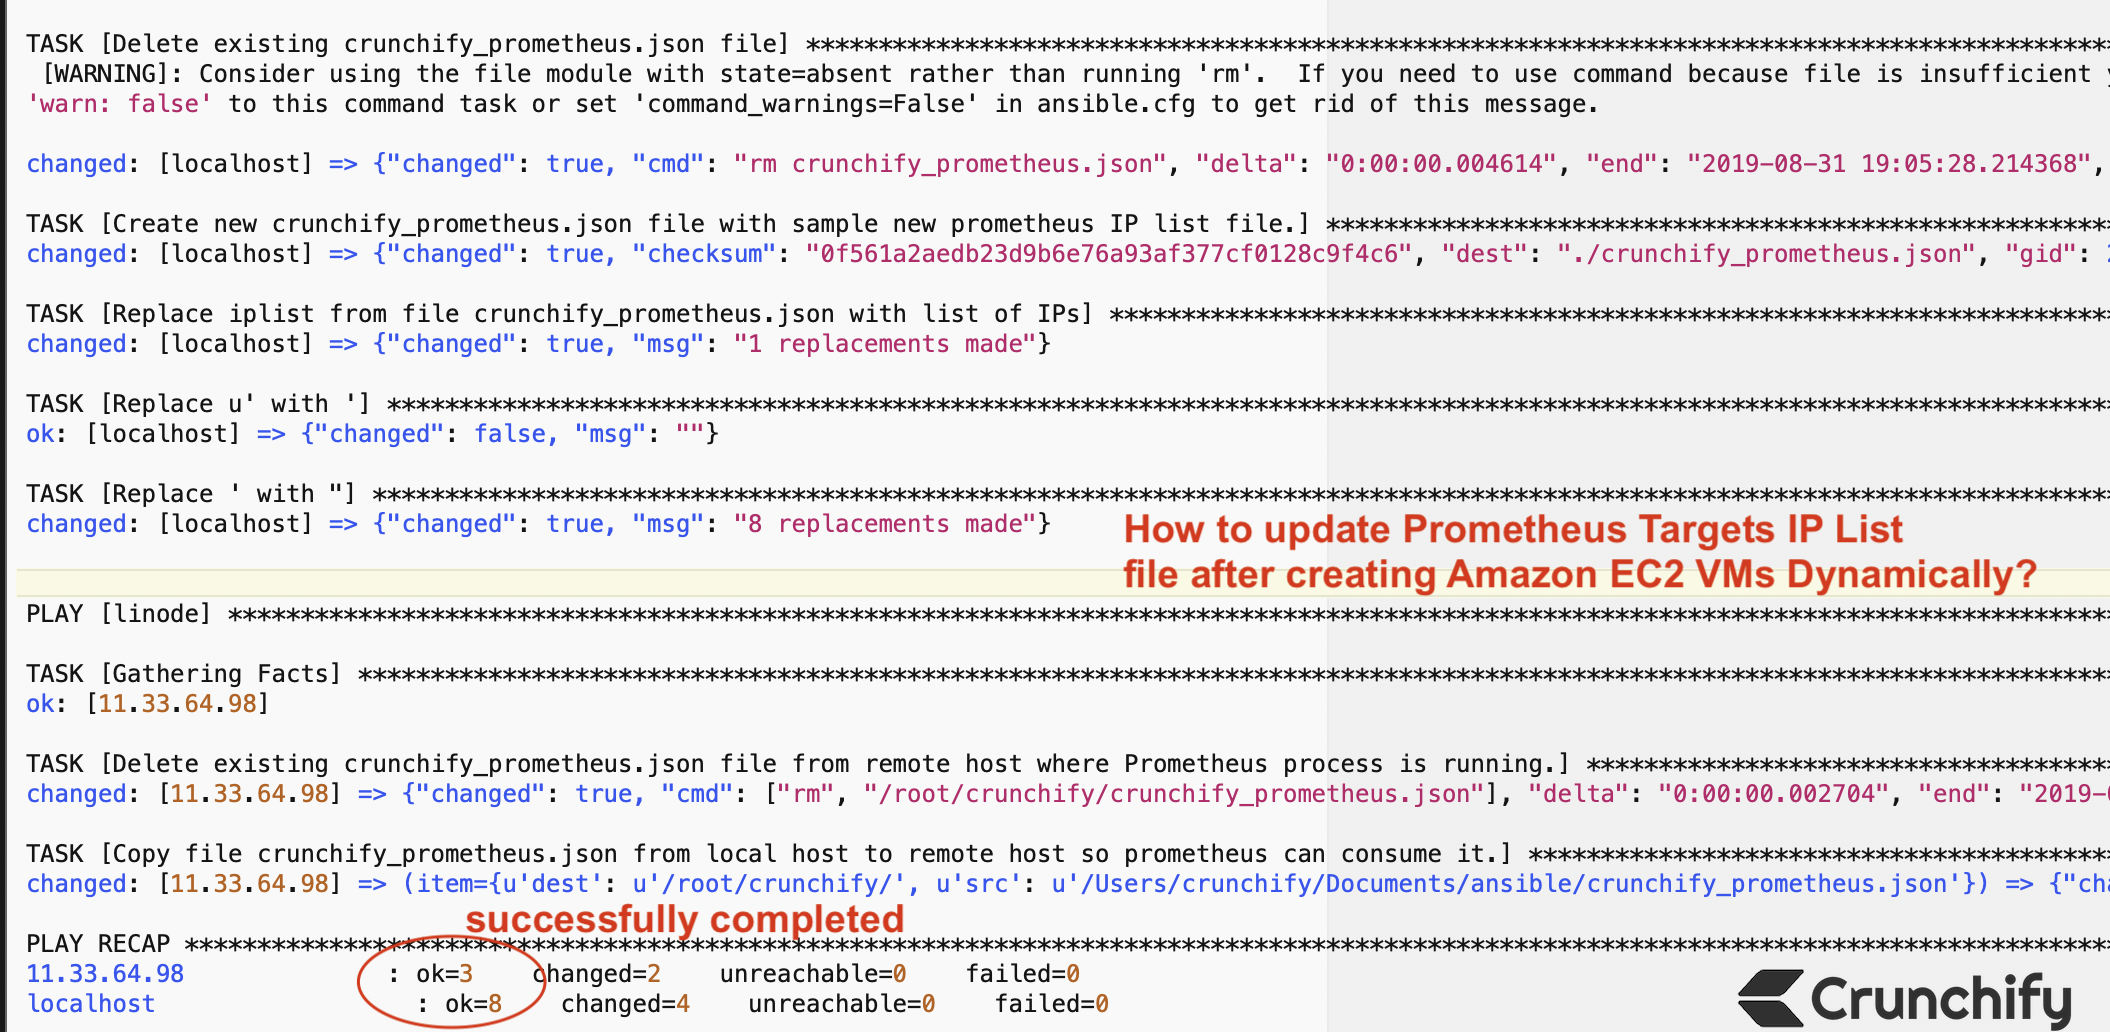 How to update Prometheus Targets IP List file after creating Amazon EC2 VMs Dynamically